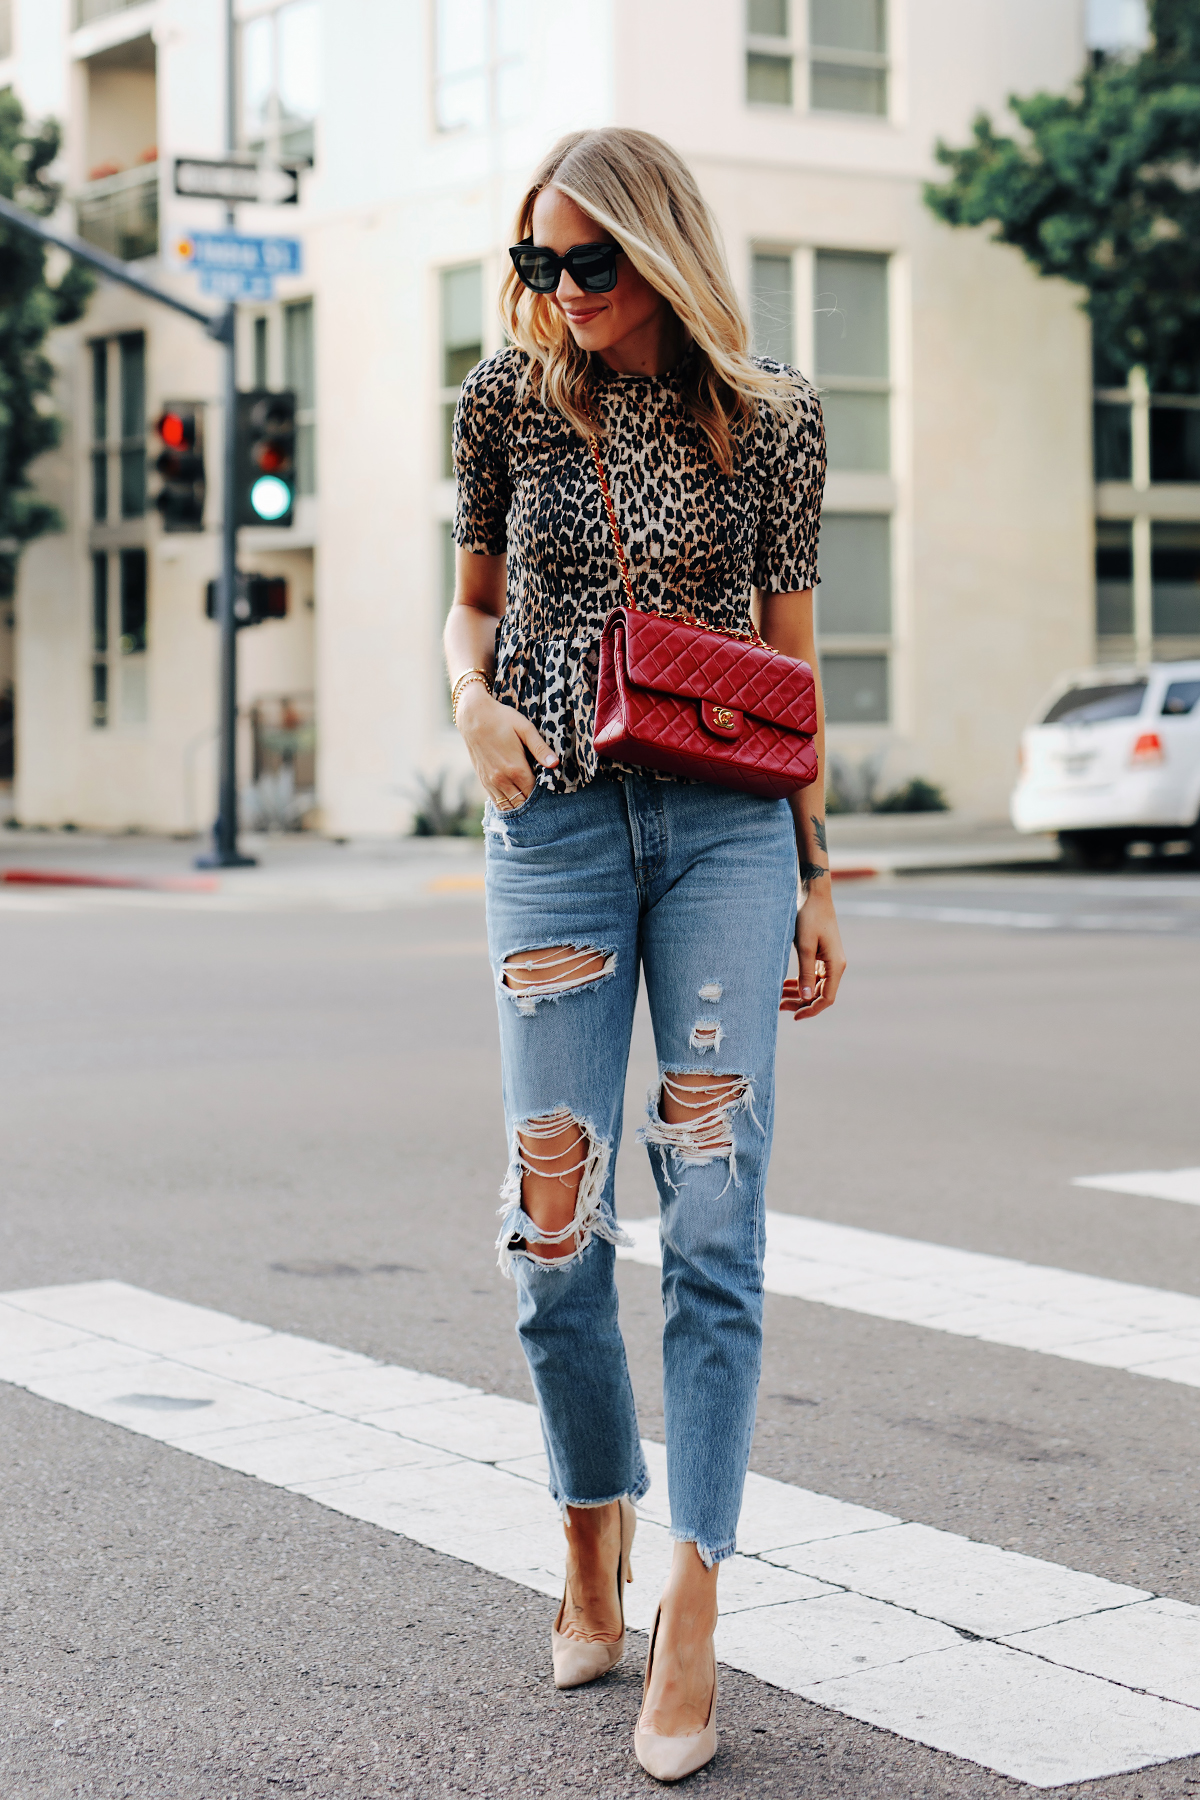 Fashion Jackson Wearing Ganni Leopard Peplum Top Levis Ripped Jeans Jimmy Choo BB Nude Pumps Chanel Classic Flap Red Handbag 2